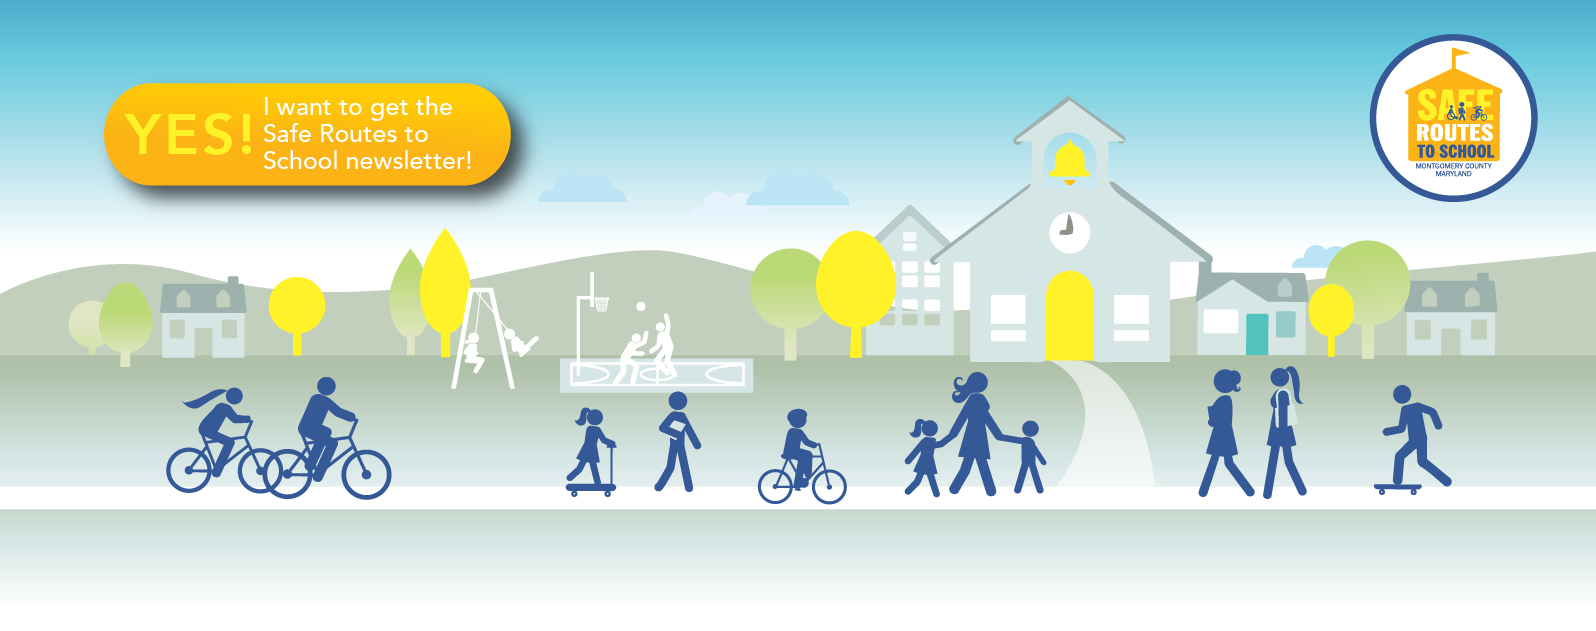 Safe Routes To School BAnner Kids going to school